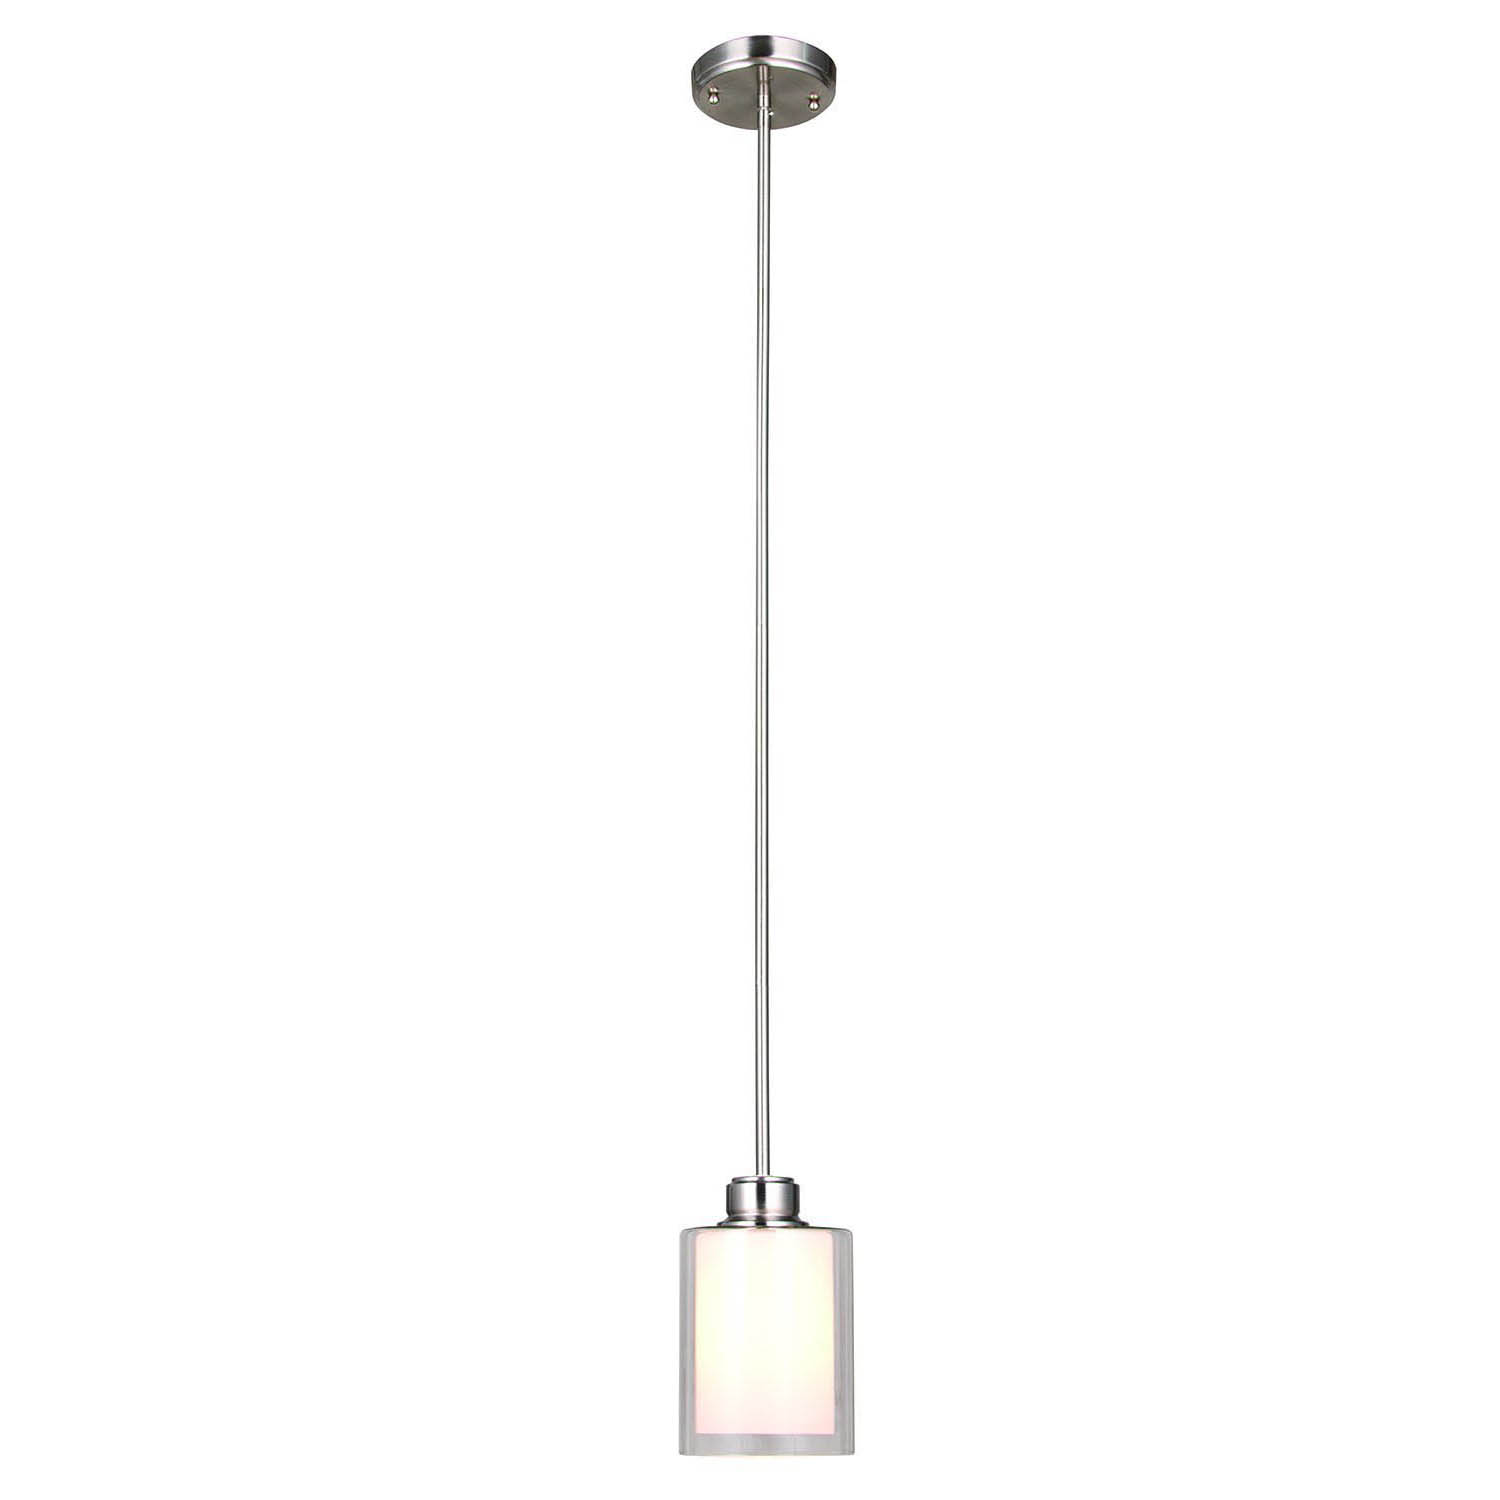 Design House Oslo Mini Light Pendant Brushed Nickel - 567214